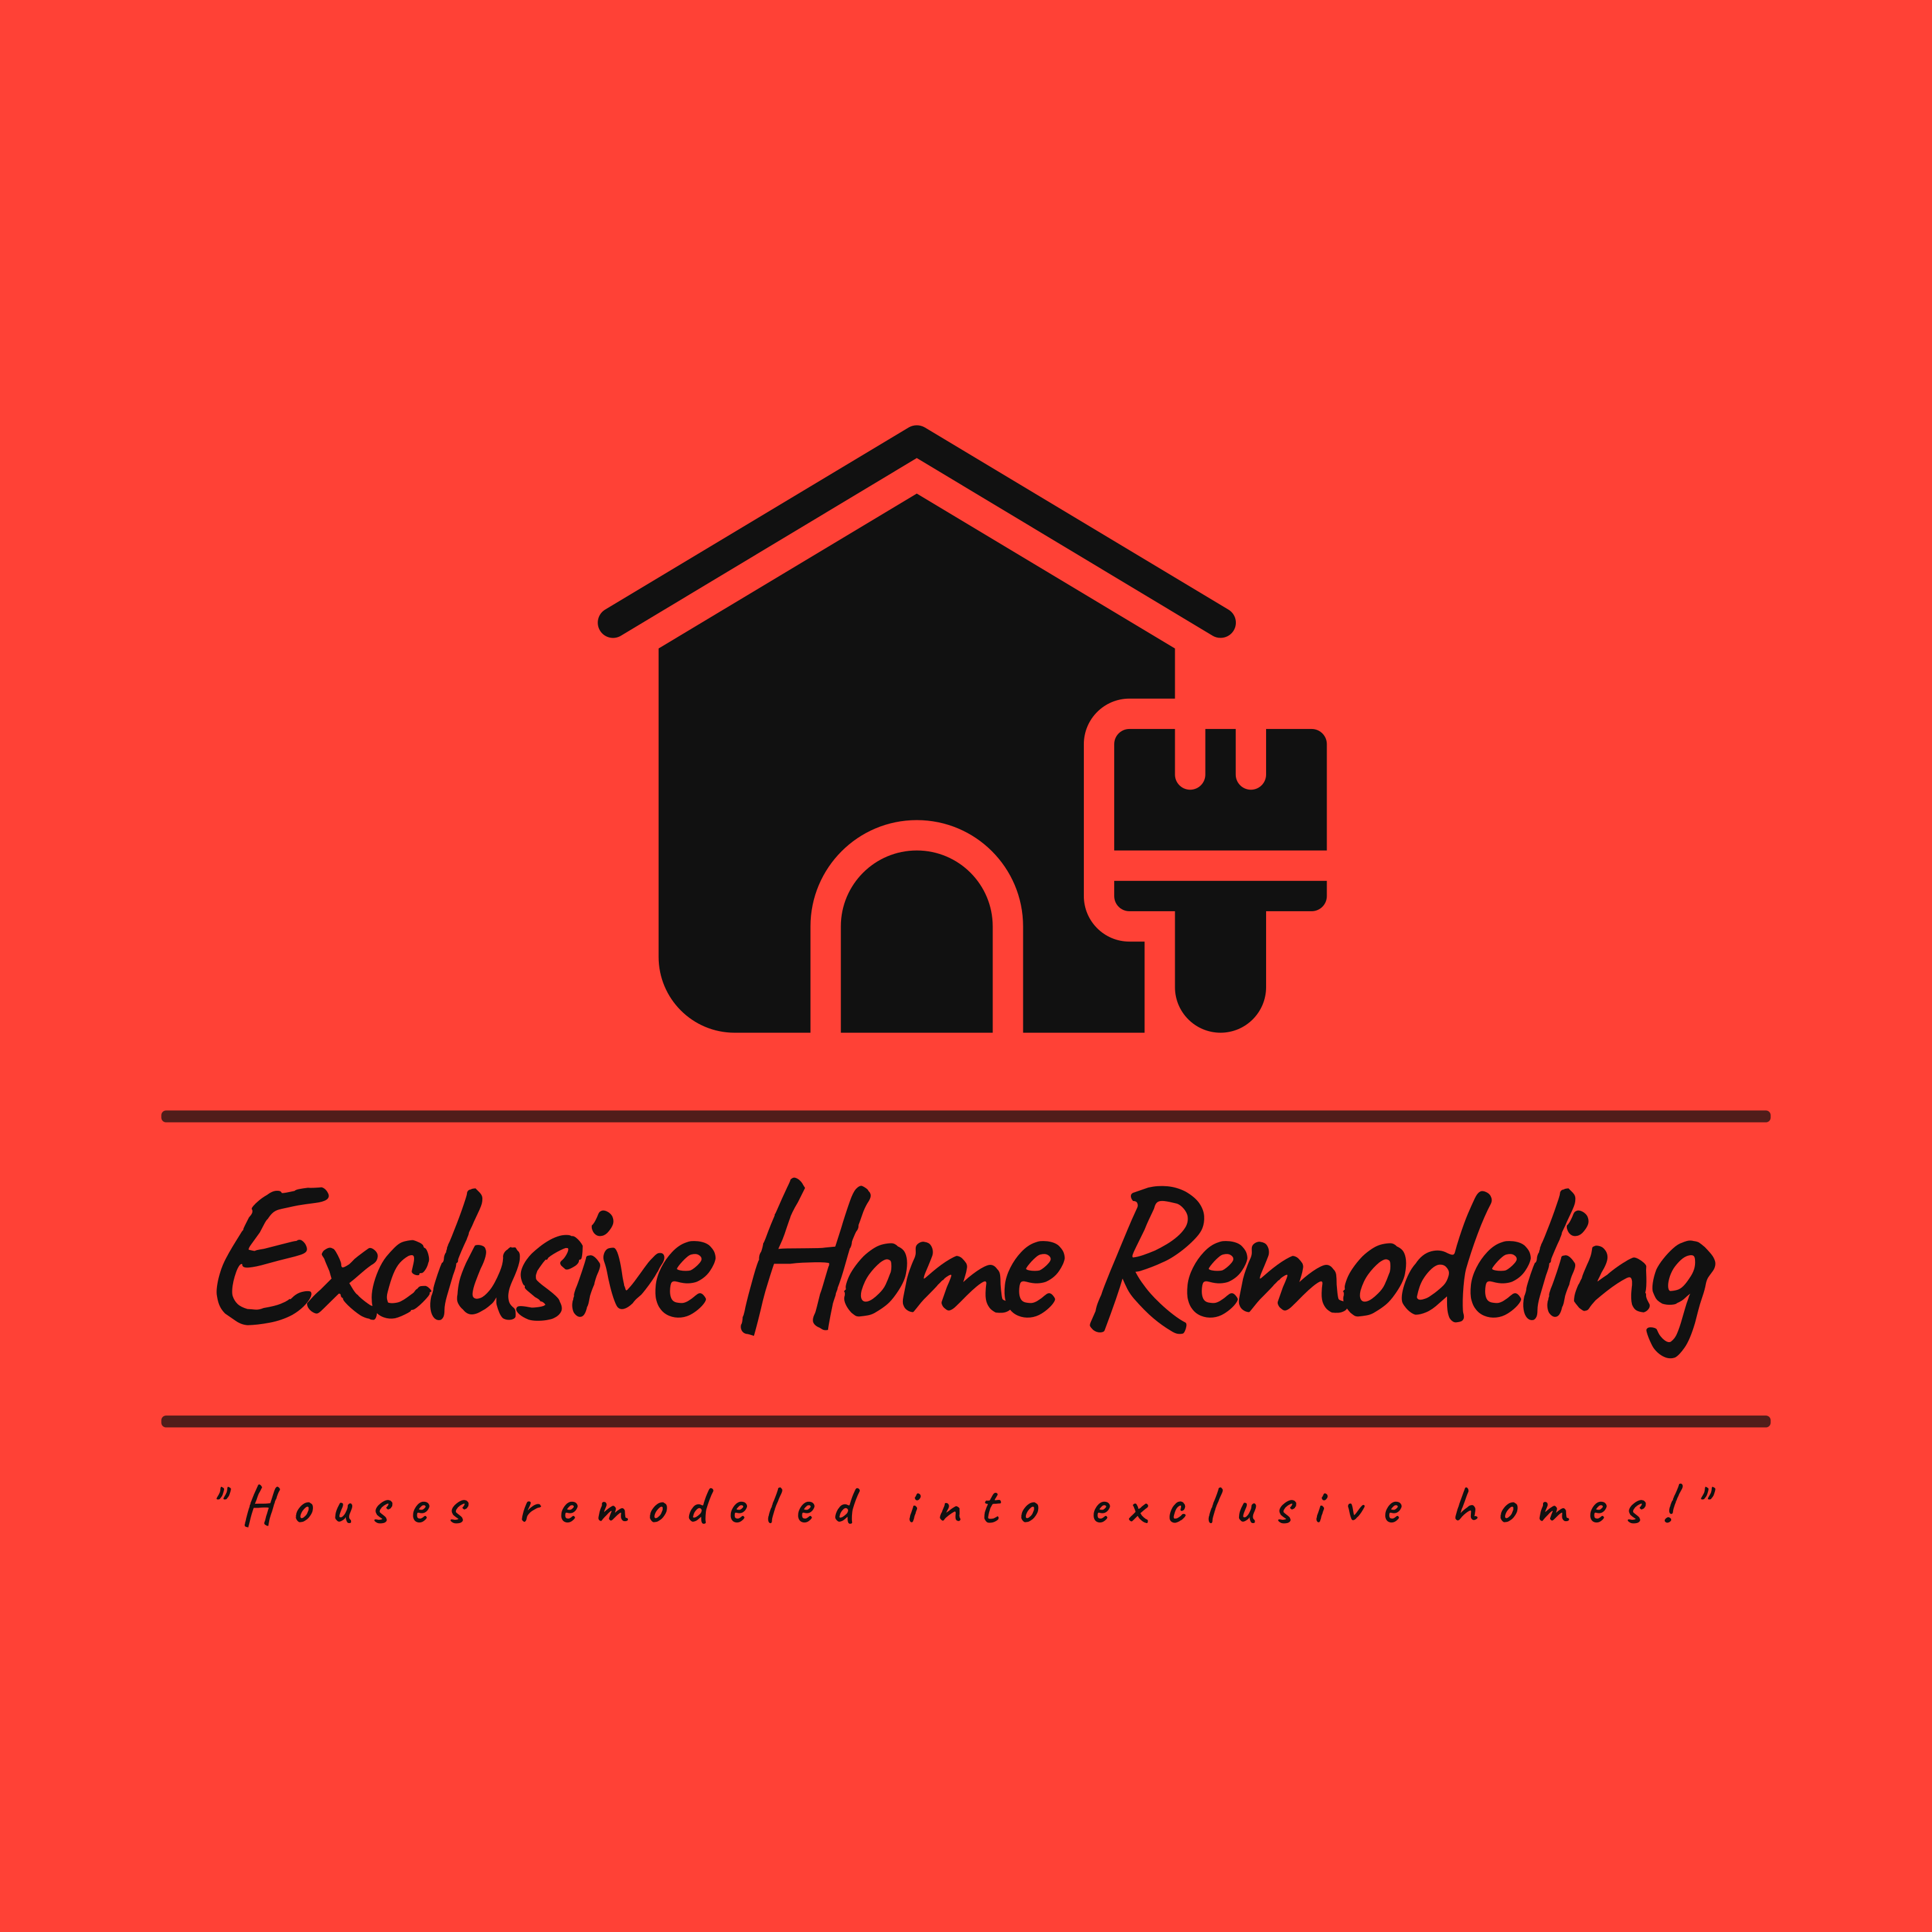 Exclusive Home Remodeling